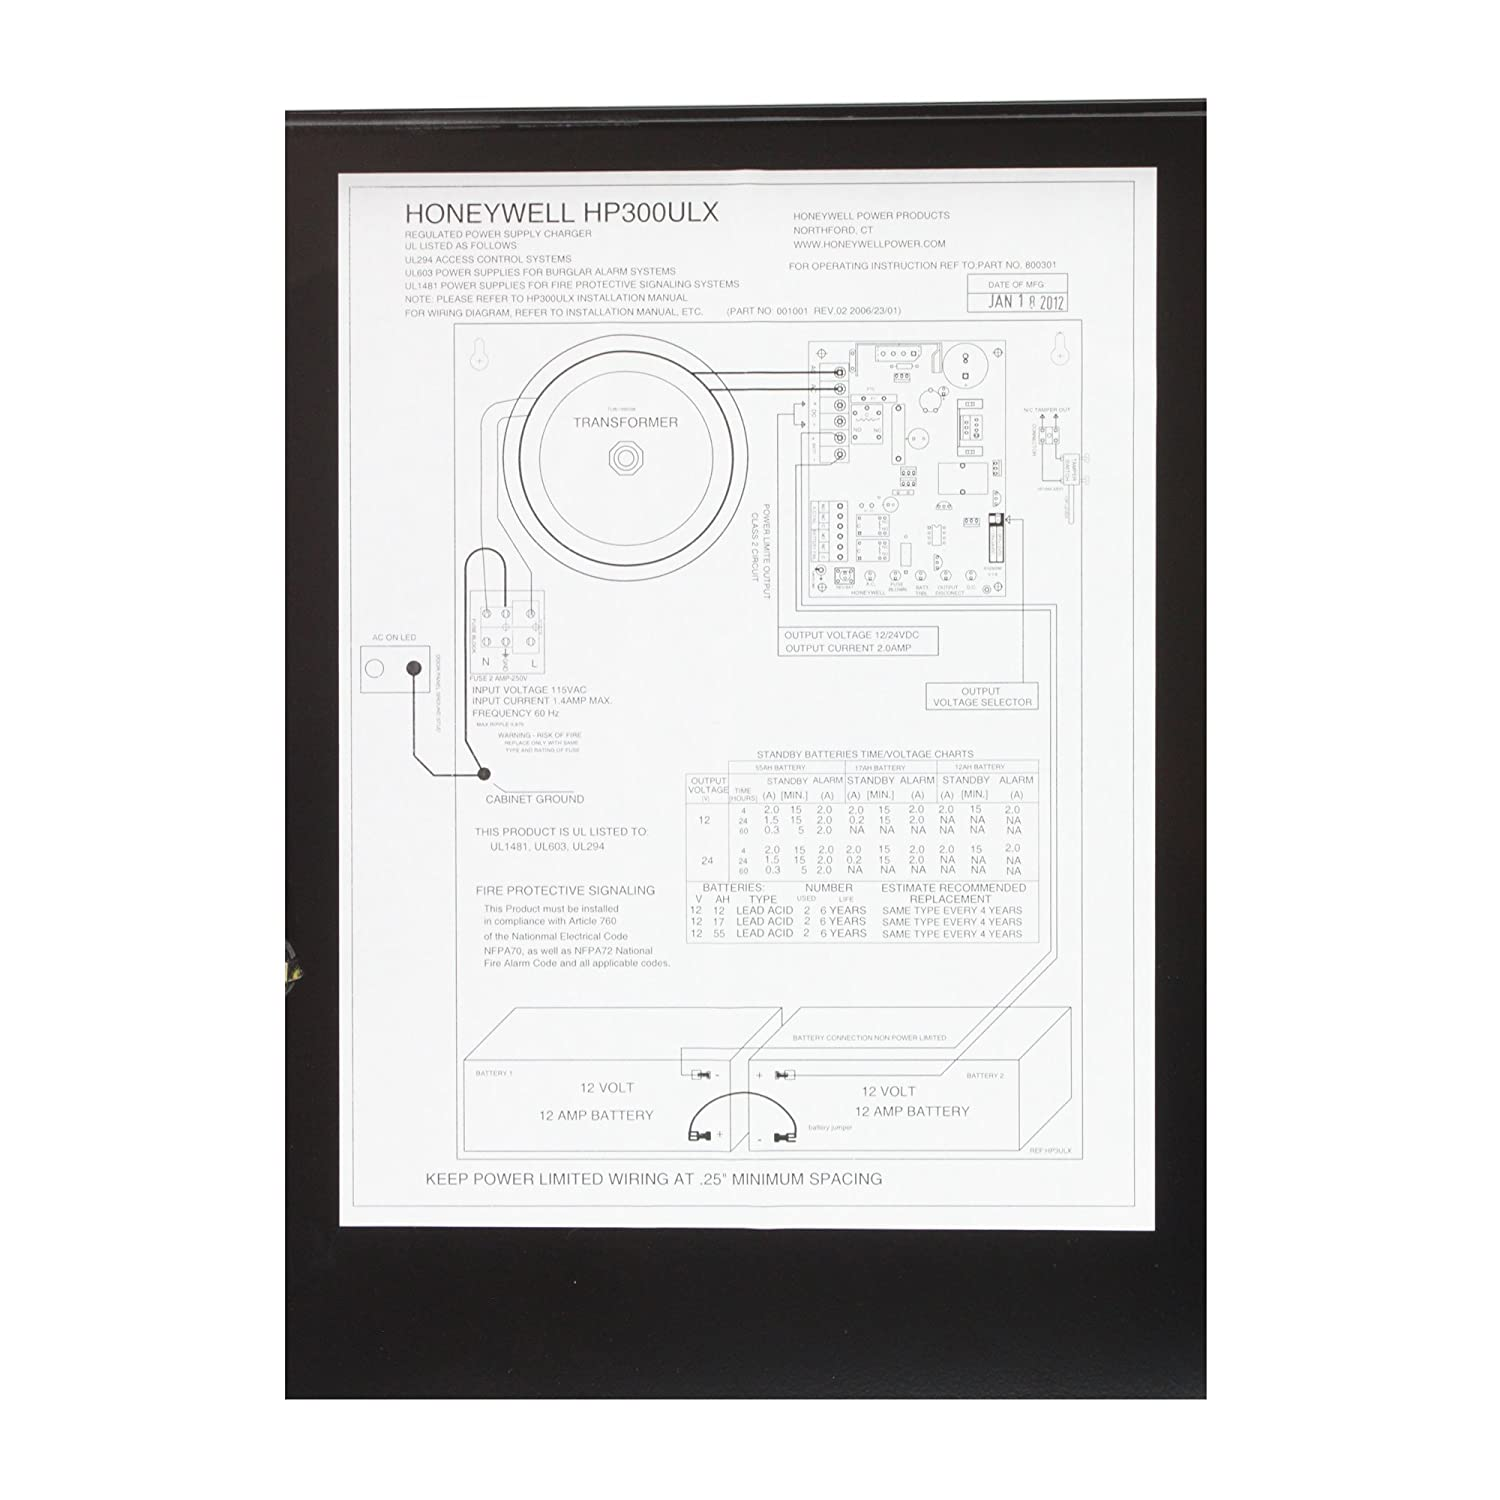 Honeywell Hp300ulx Access Control Power Supply Charger Class A Fire Alarm Wiring Diagram 12 24 Vdc 25 Amp Camera Photo